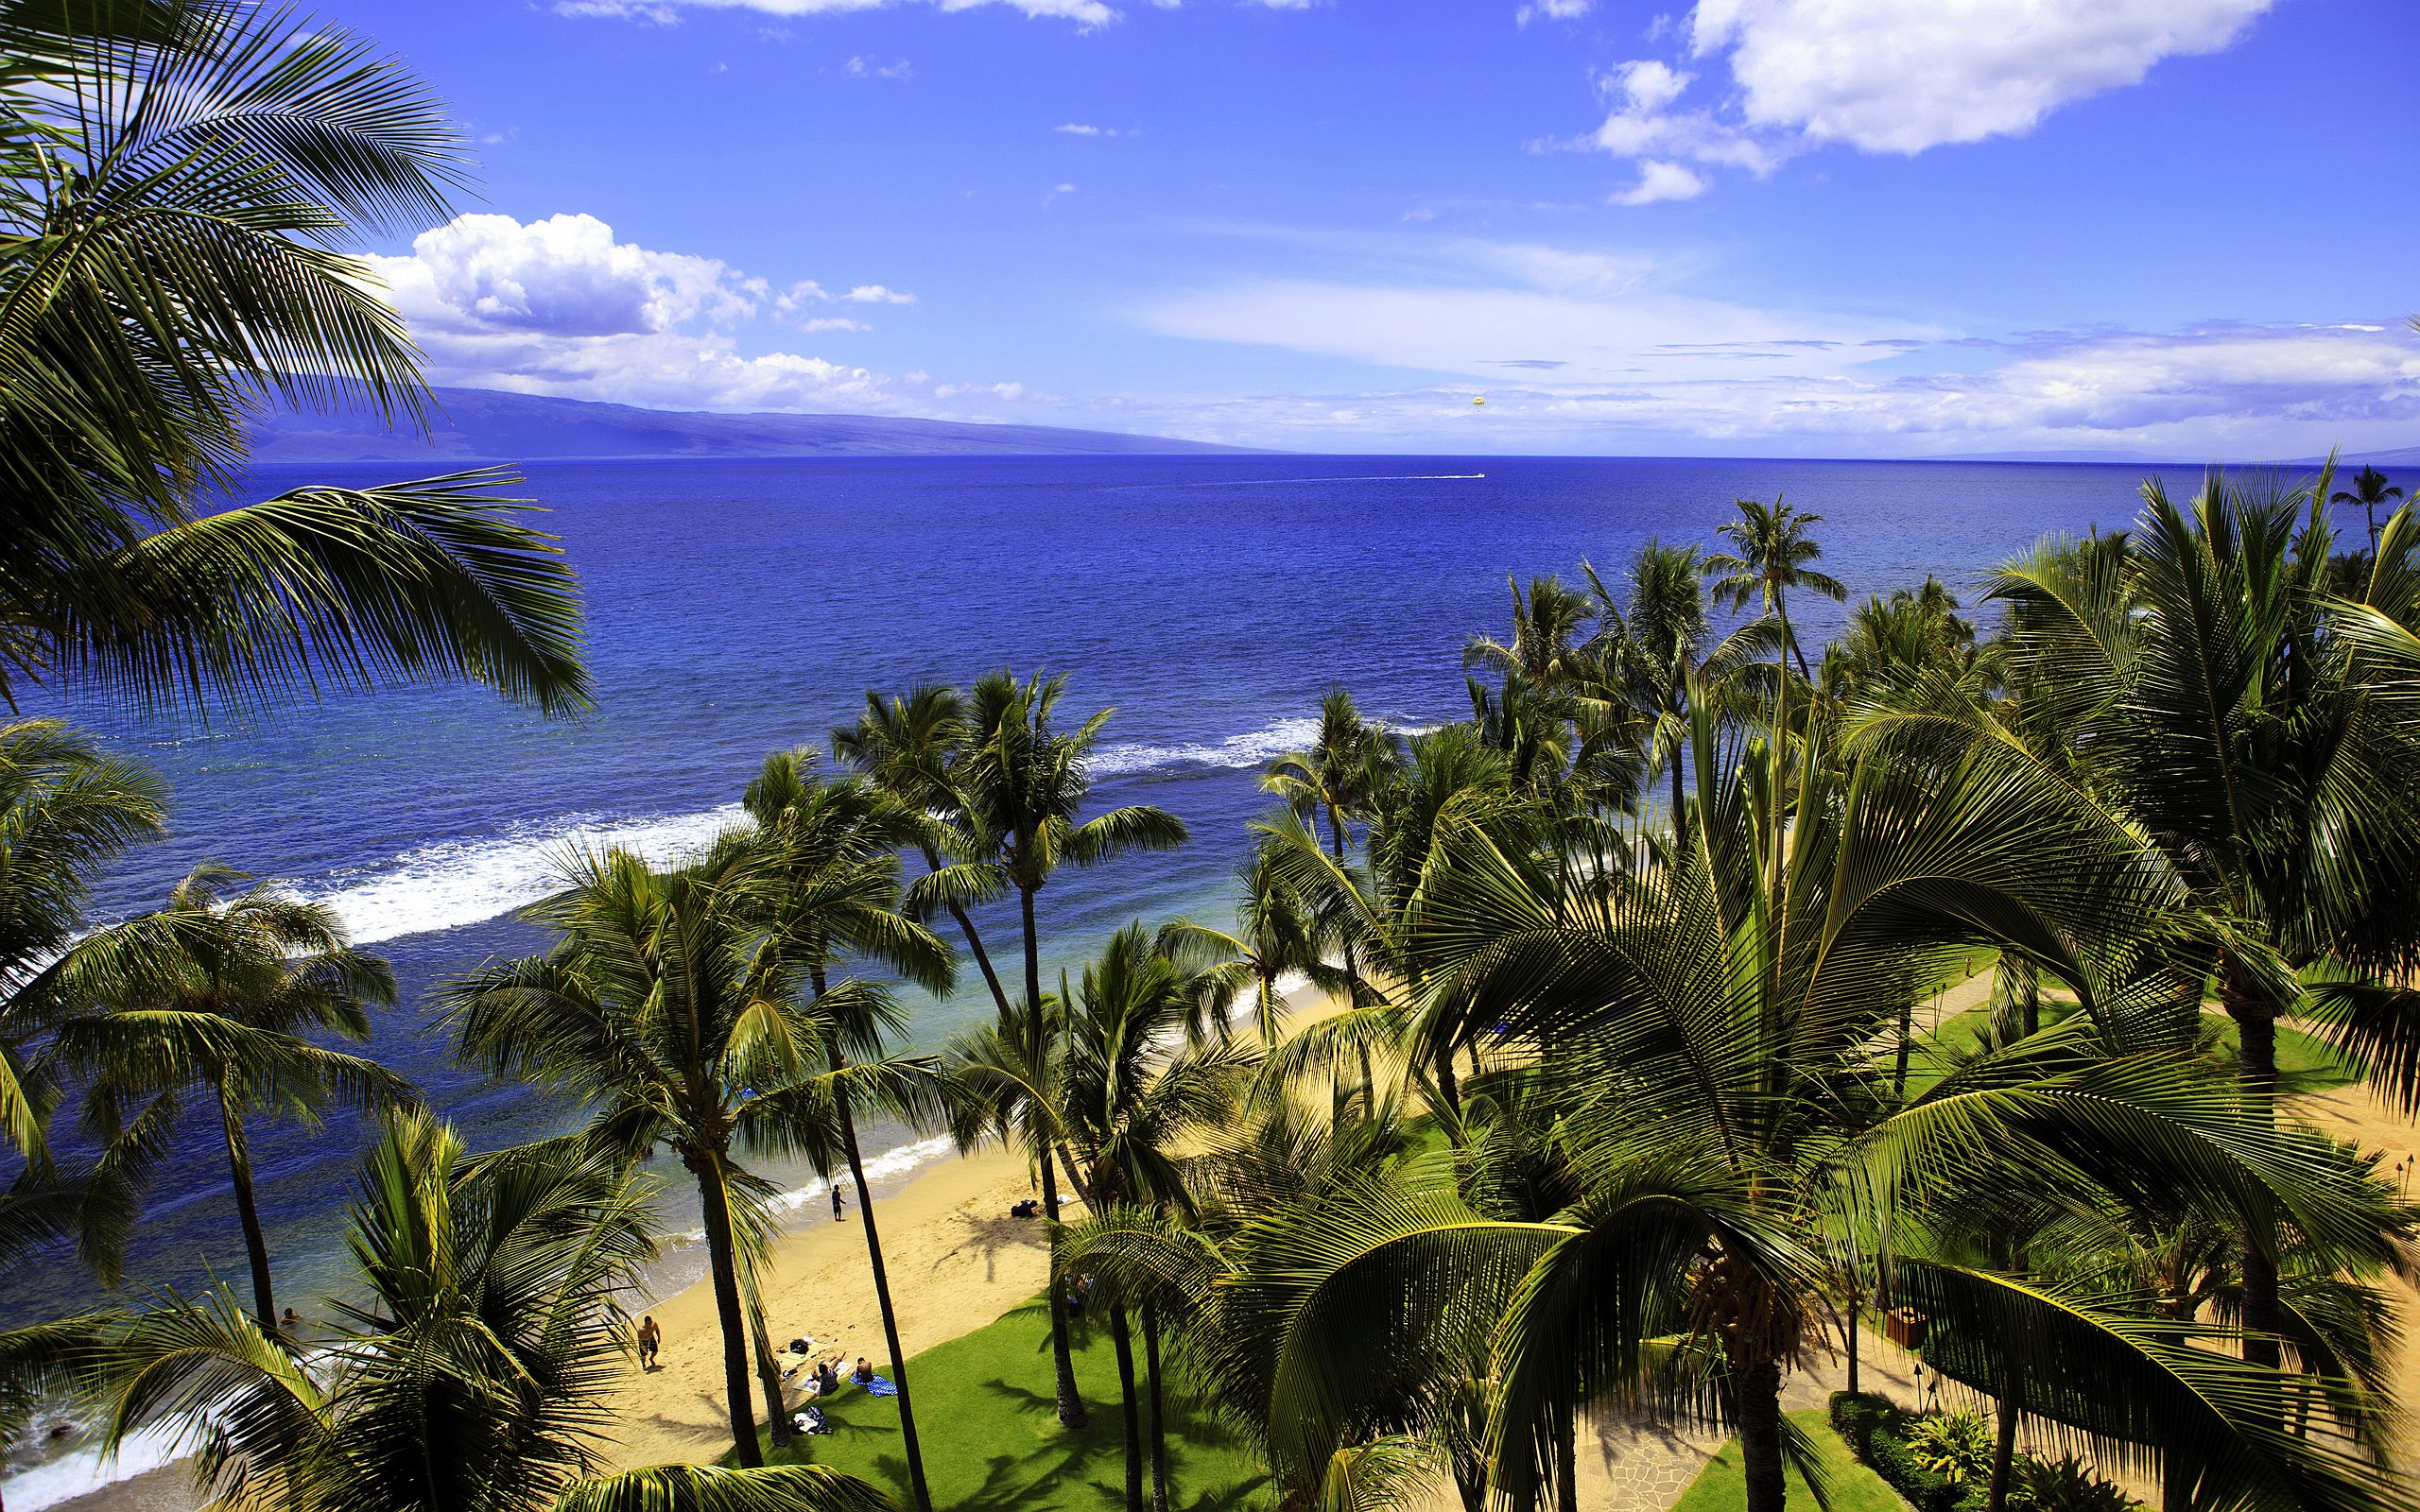 Hawaii Beach Wallpaper Hd Free: Hawaii Beach - HD Desktop Wallpapers